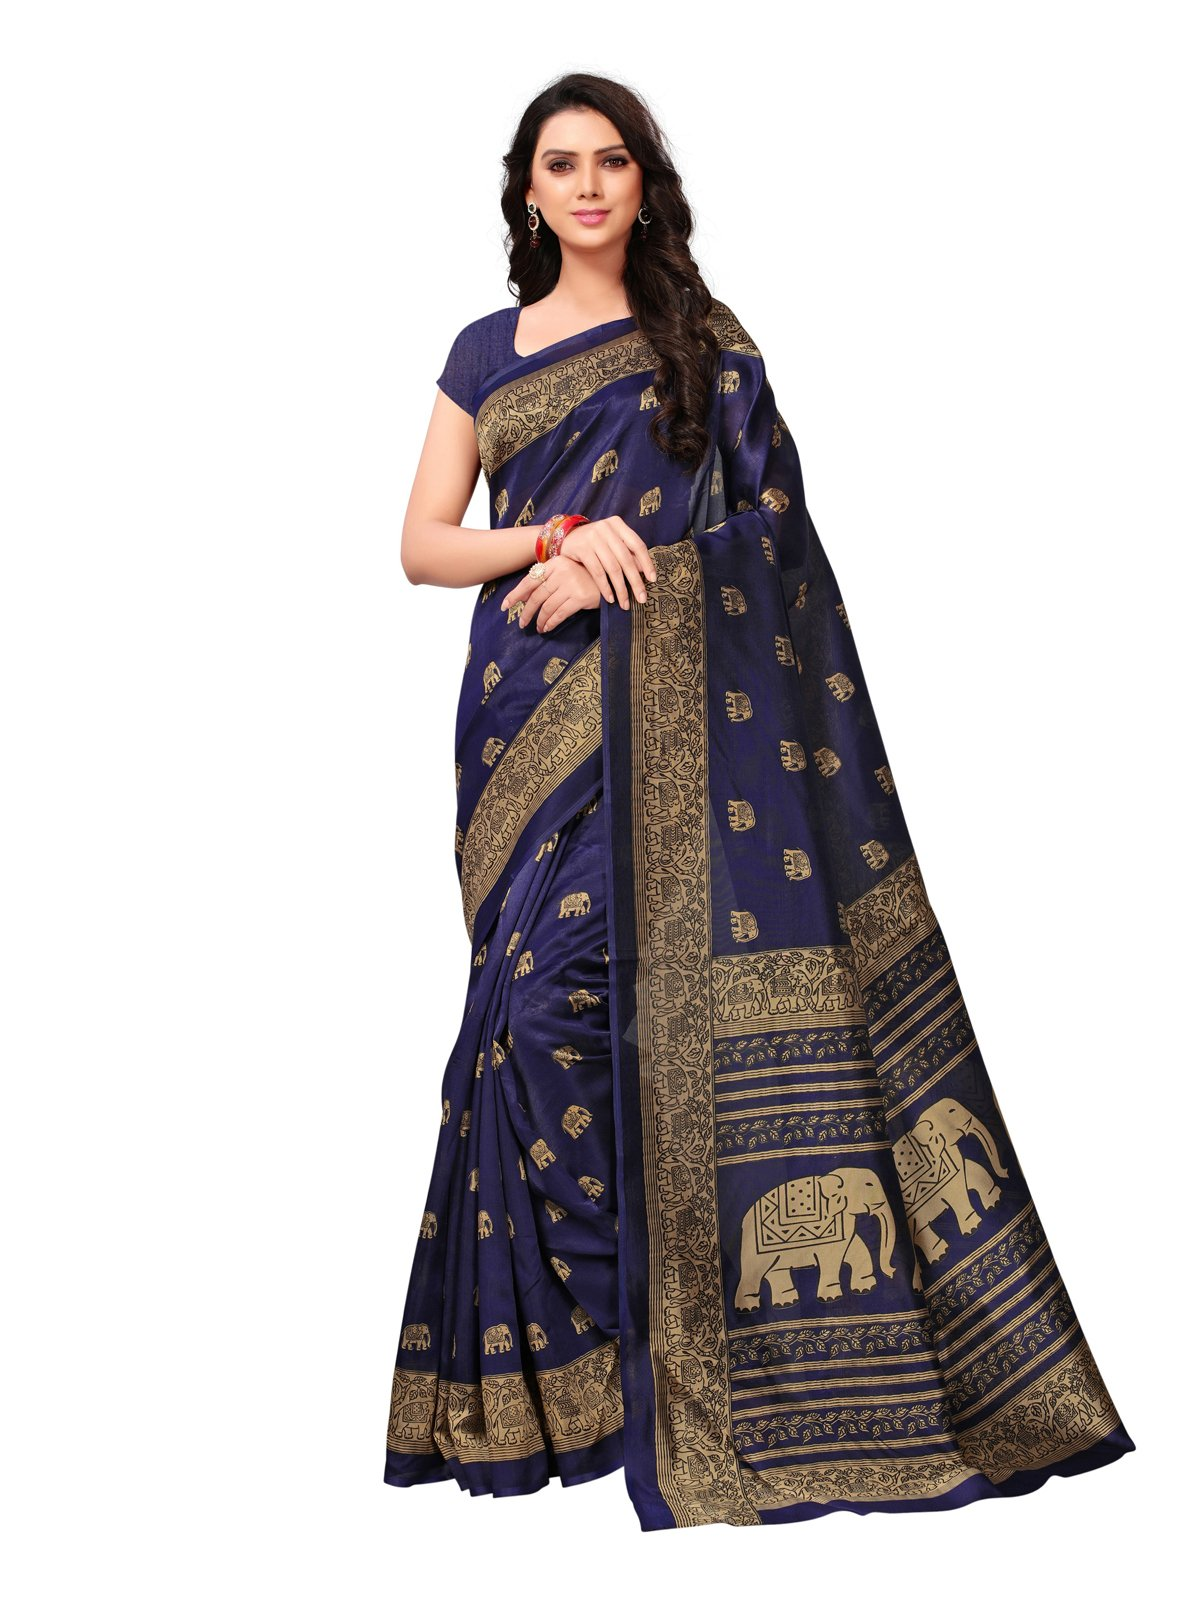 Kanchnar Women's Navy Blue Poly Silk Printed Saree (735S41)